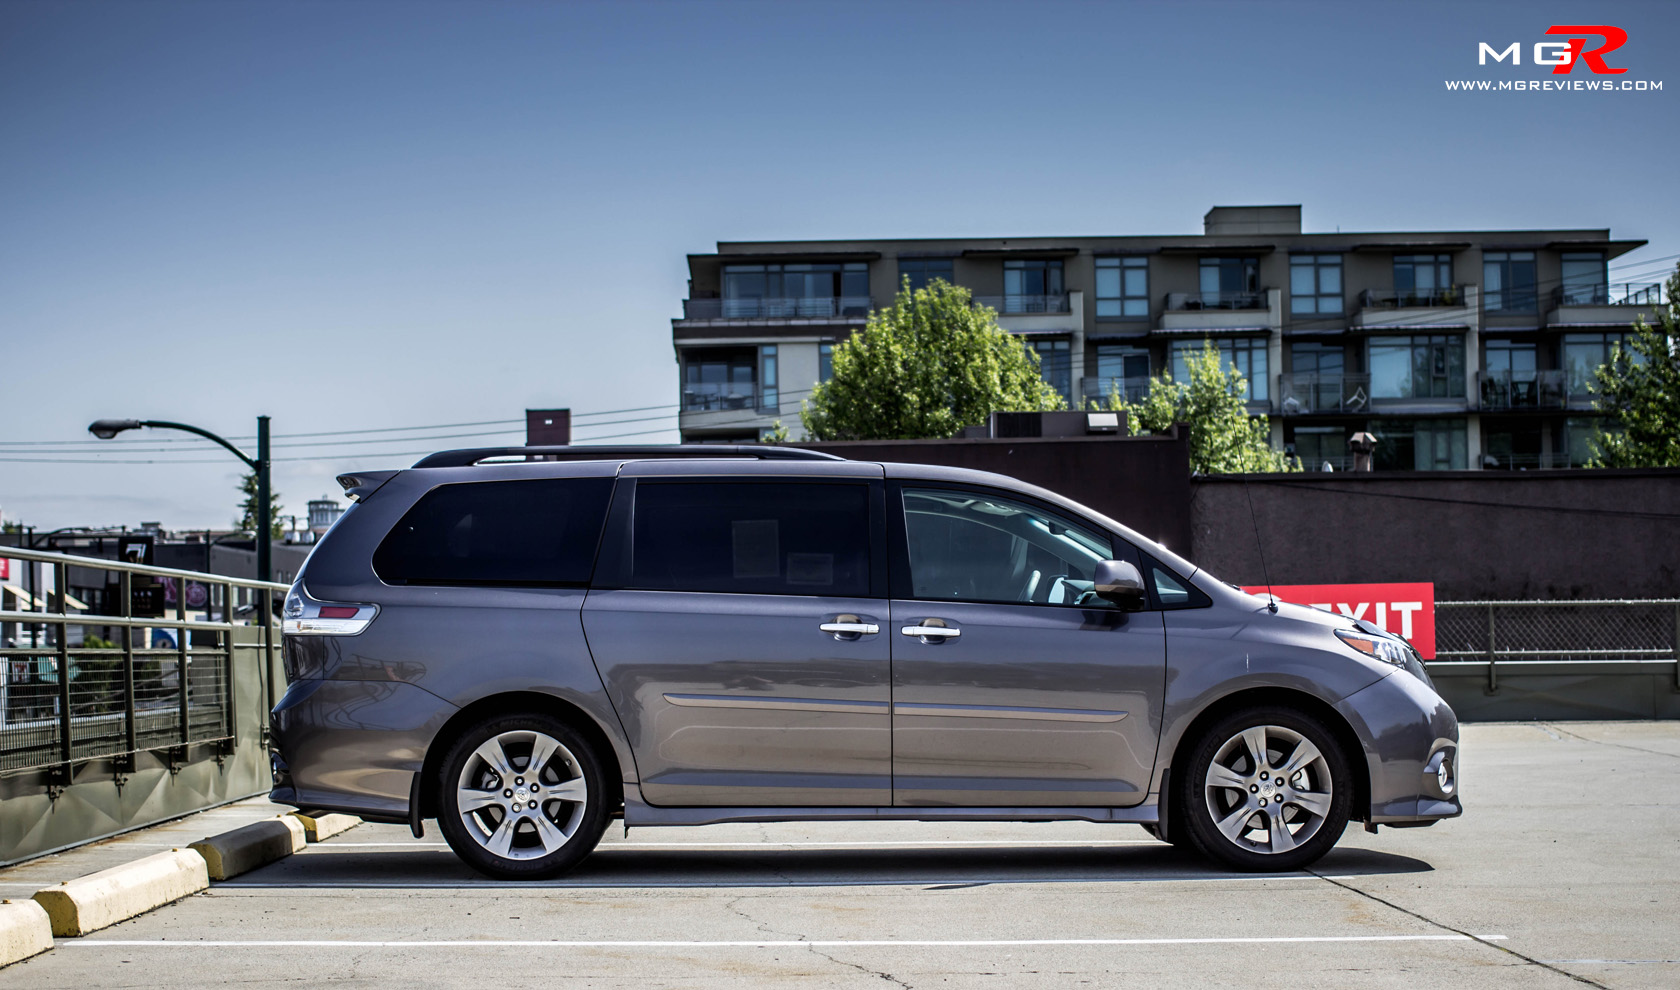 review 2014 toyota sienna m g reviews. Black Bedroom Furniture Sets. Home Design Ideas